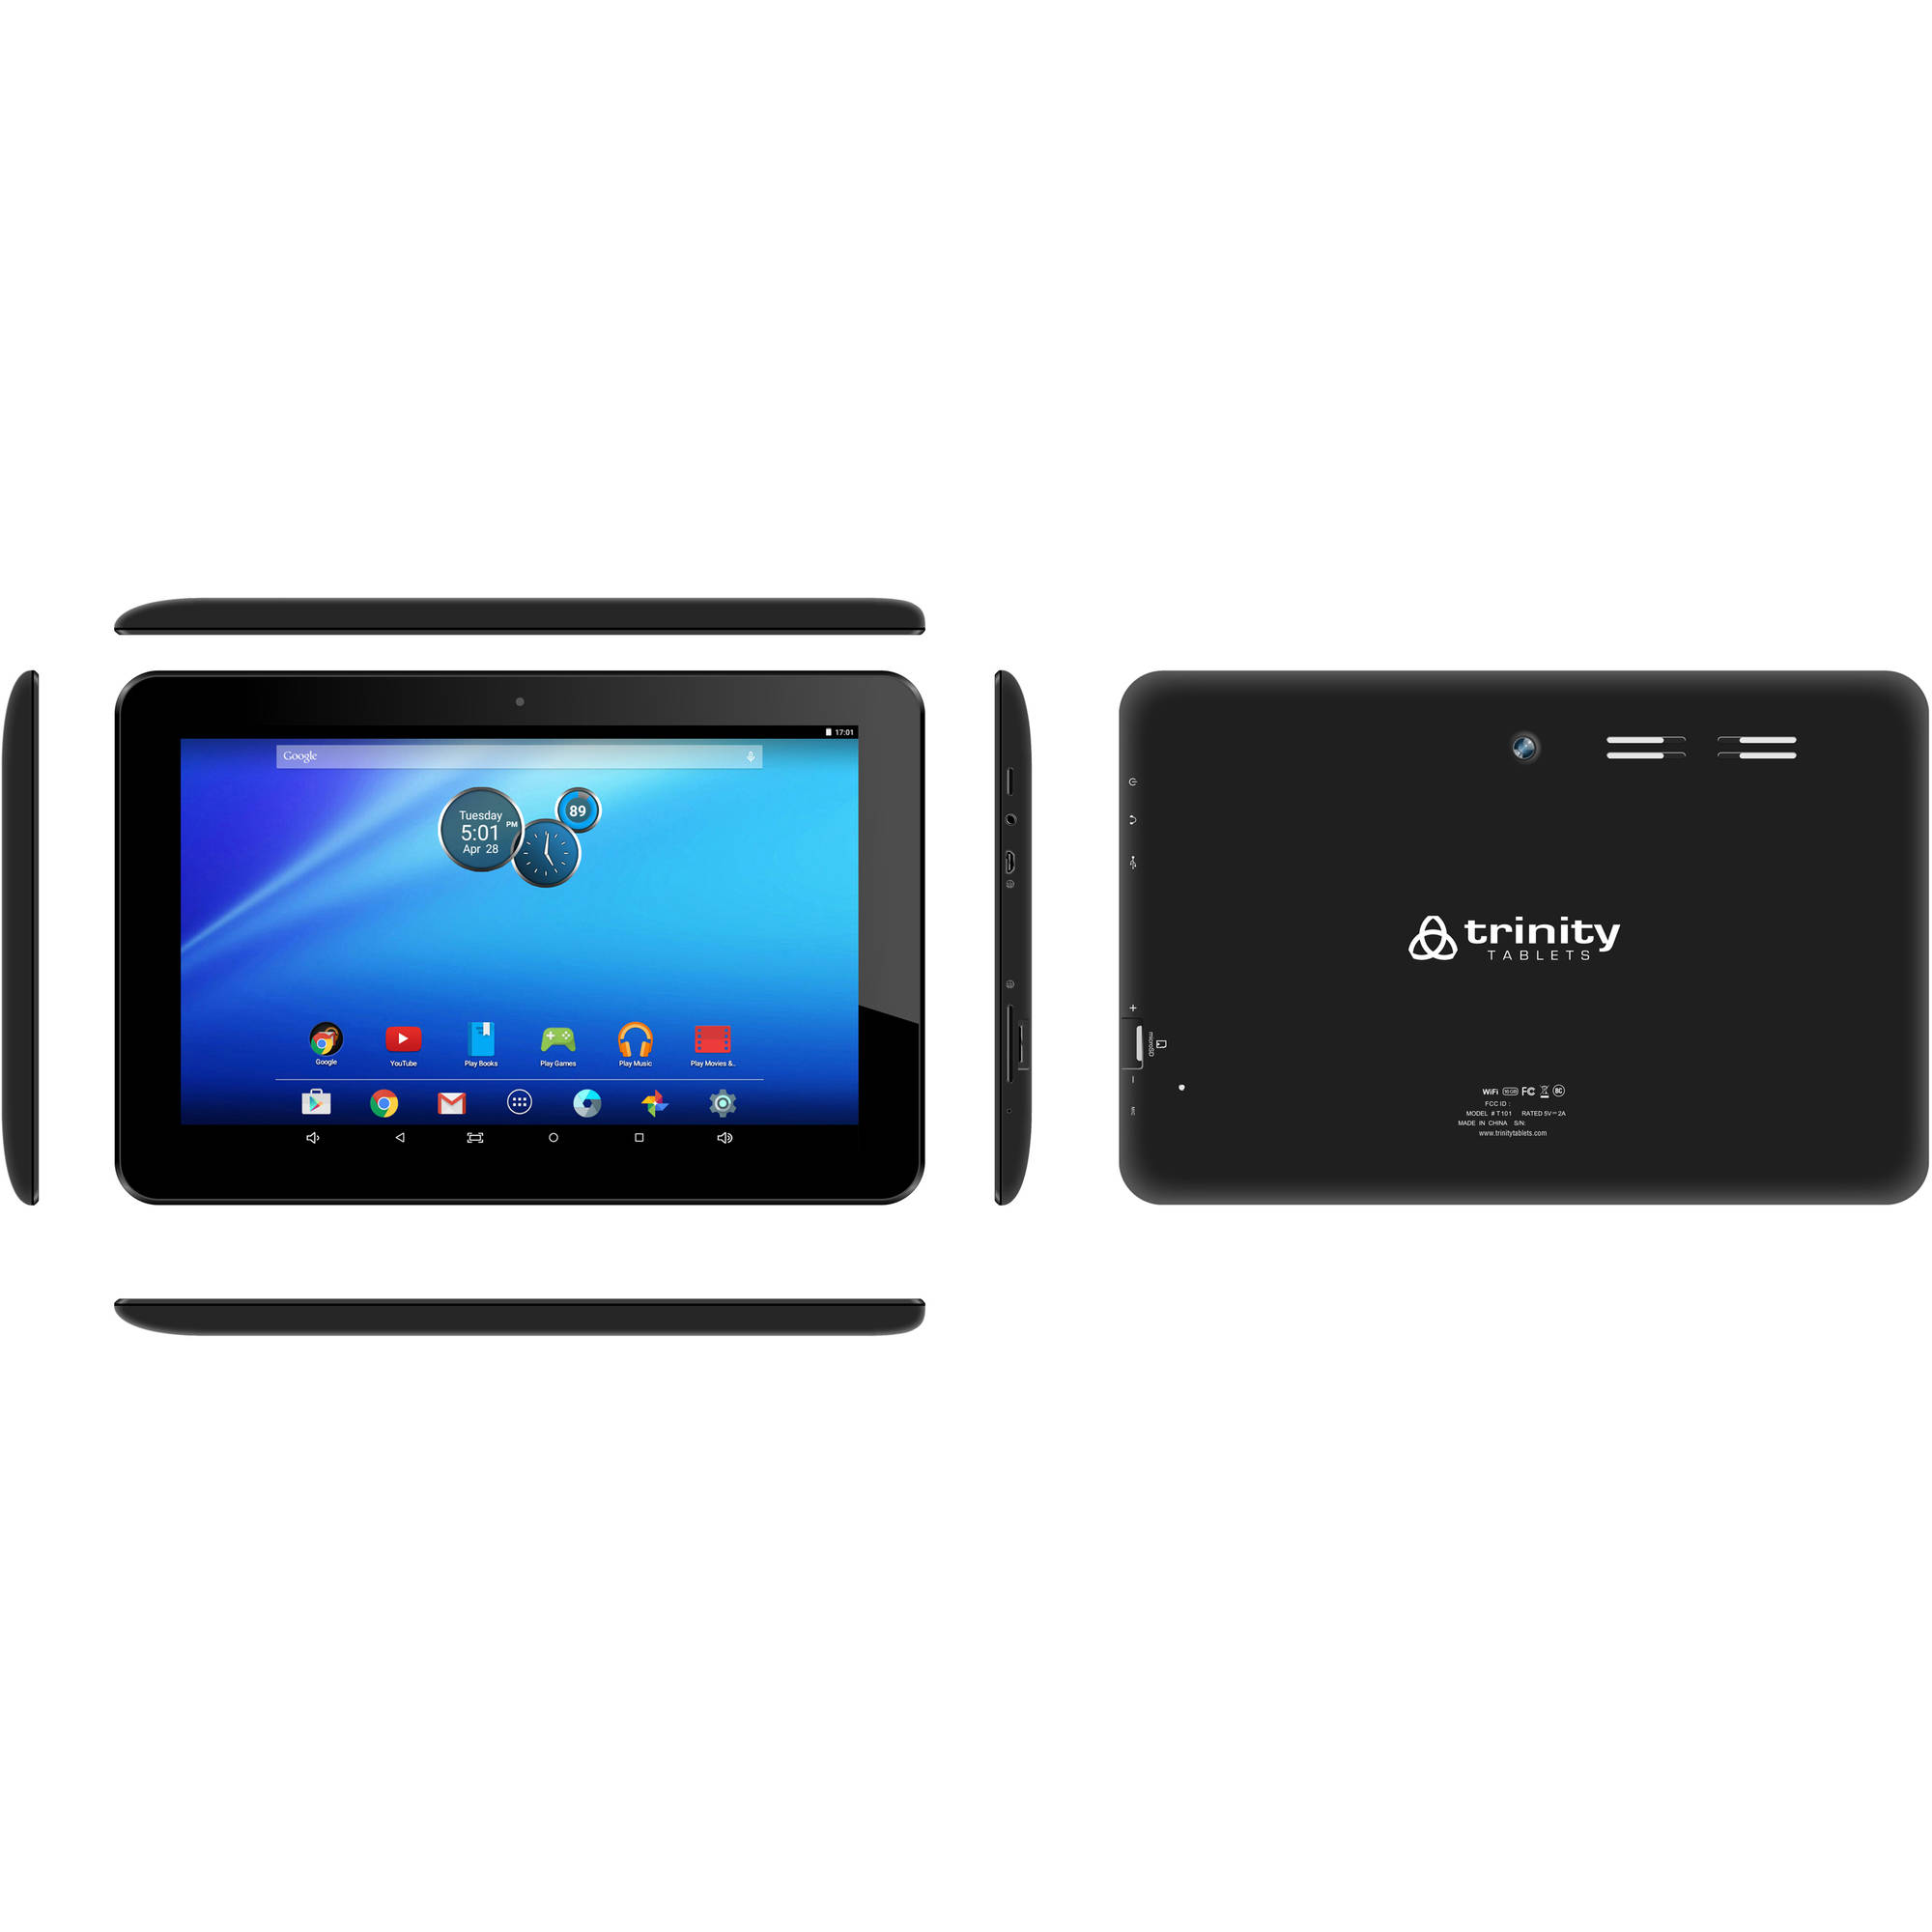 "Trinity Tablets T101 with WiFi 10.1"" Touchscreen Tablet PC Featuring Android 5.0 (Lollipop) Operating"